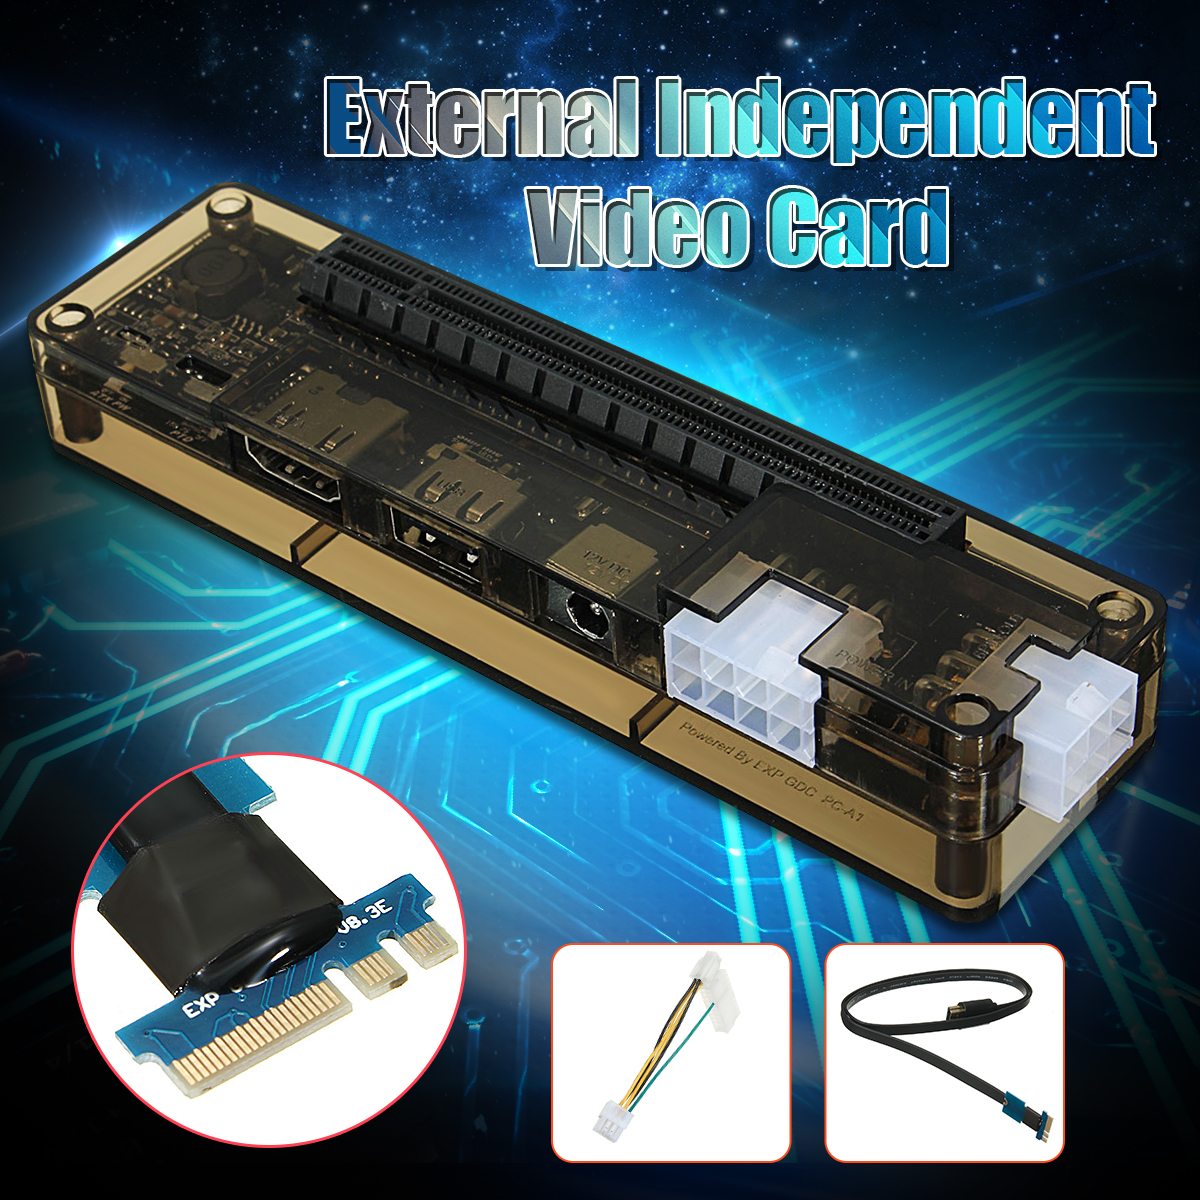 V8.0 EXP GDC Beast Laptop External Independent Video Card Dock NGFF Notebook PCI-E expansion device new exp gdc hdmi to mini pci e cable laptop notebook pci e expansion device for exp gdc external independent video card dock